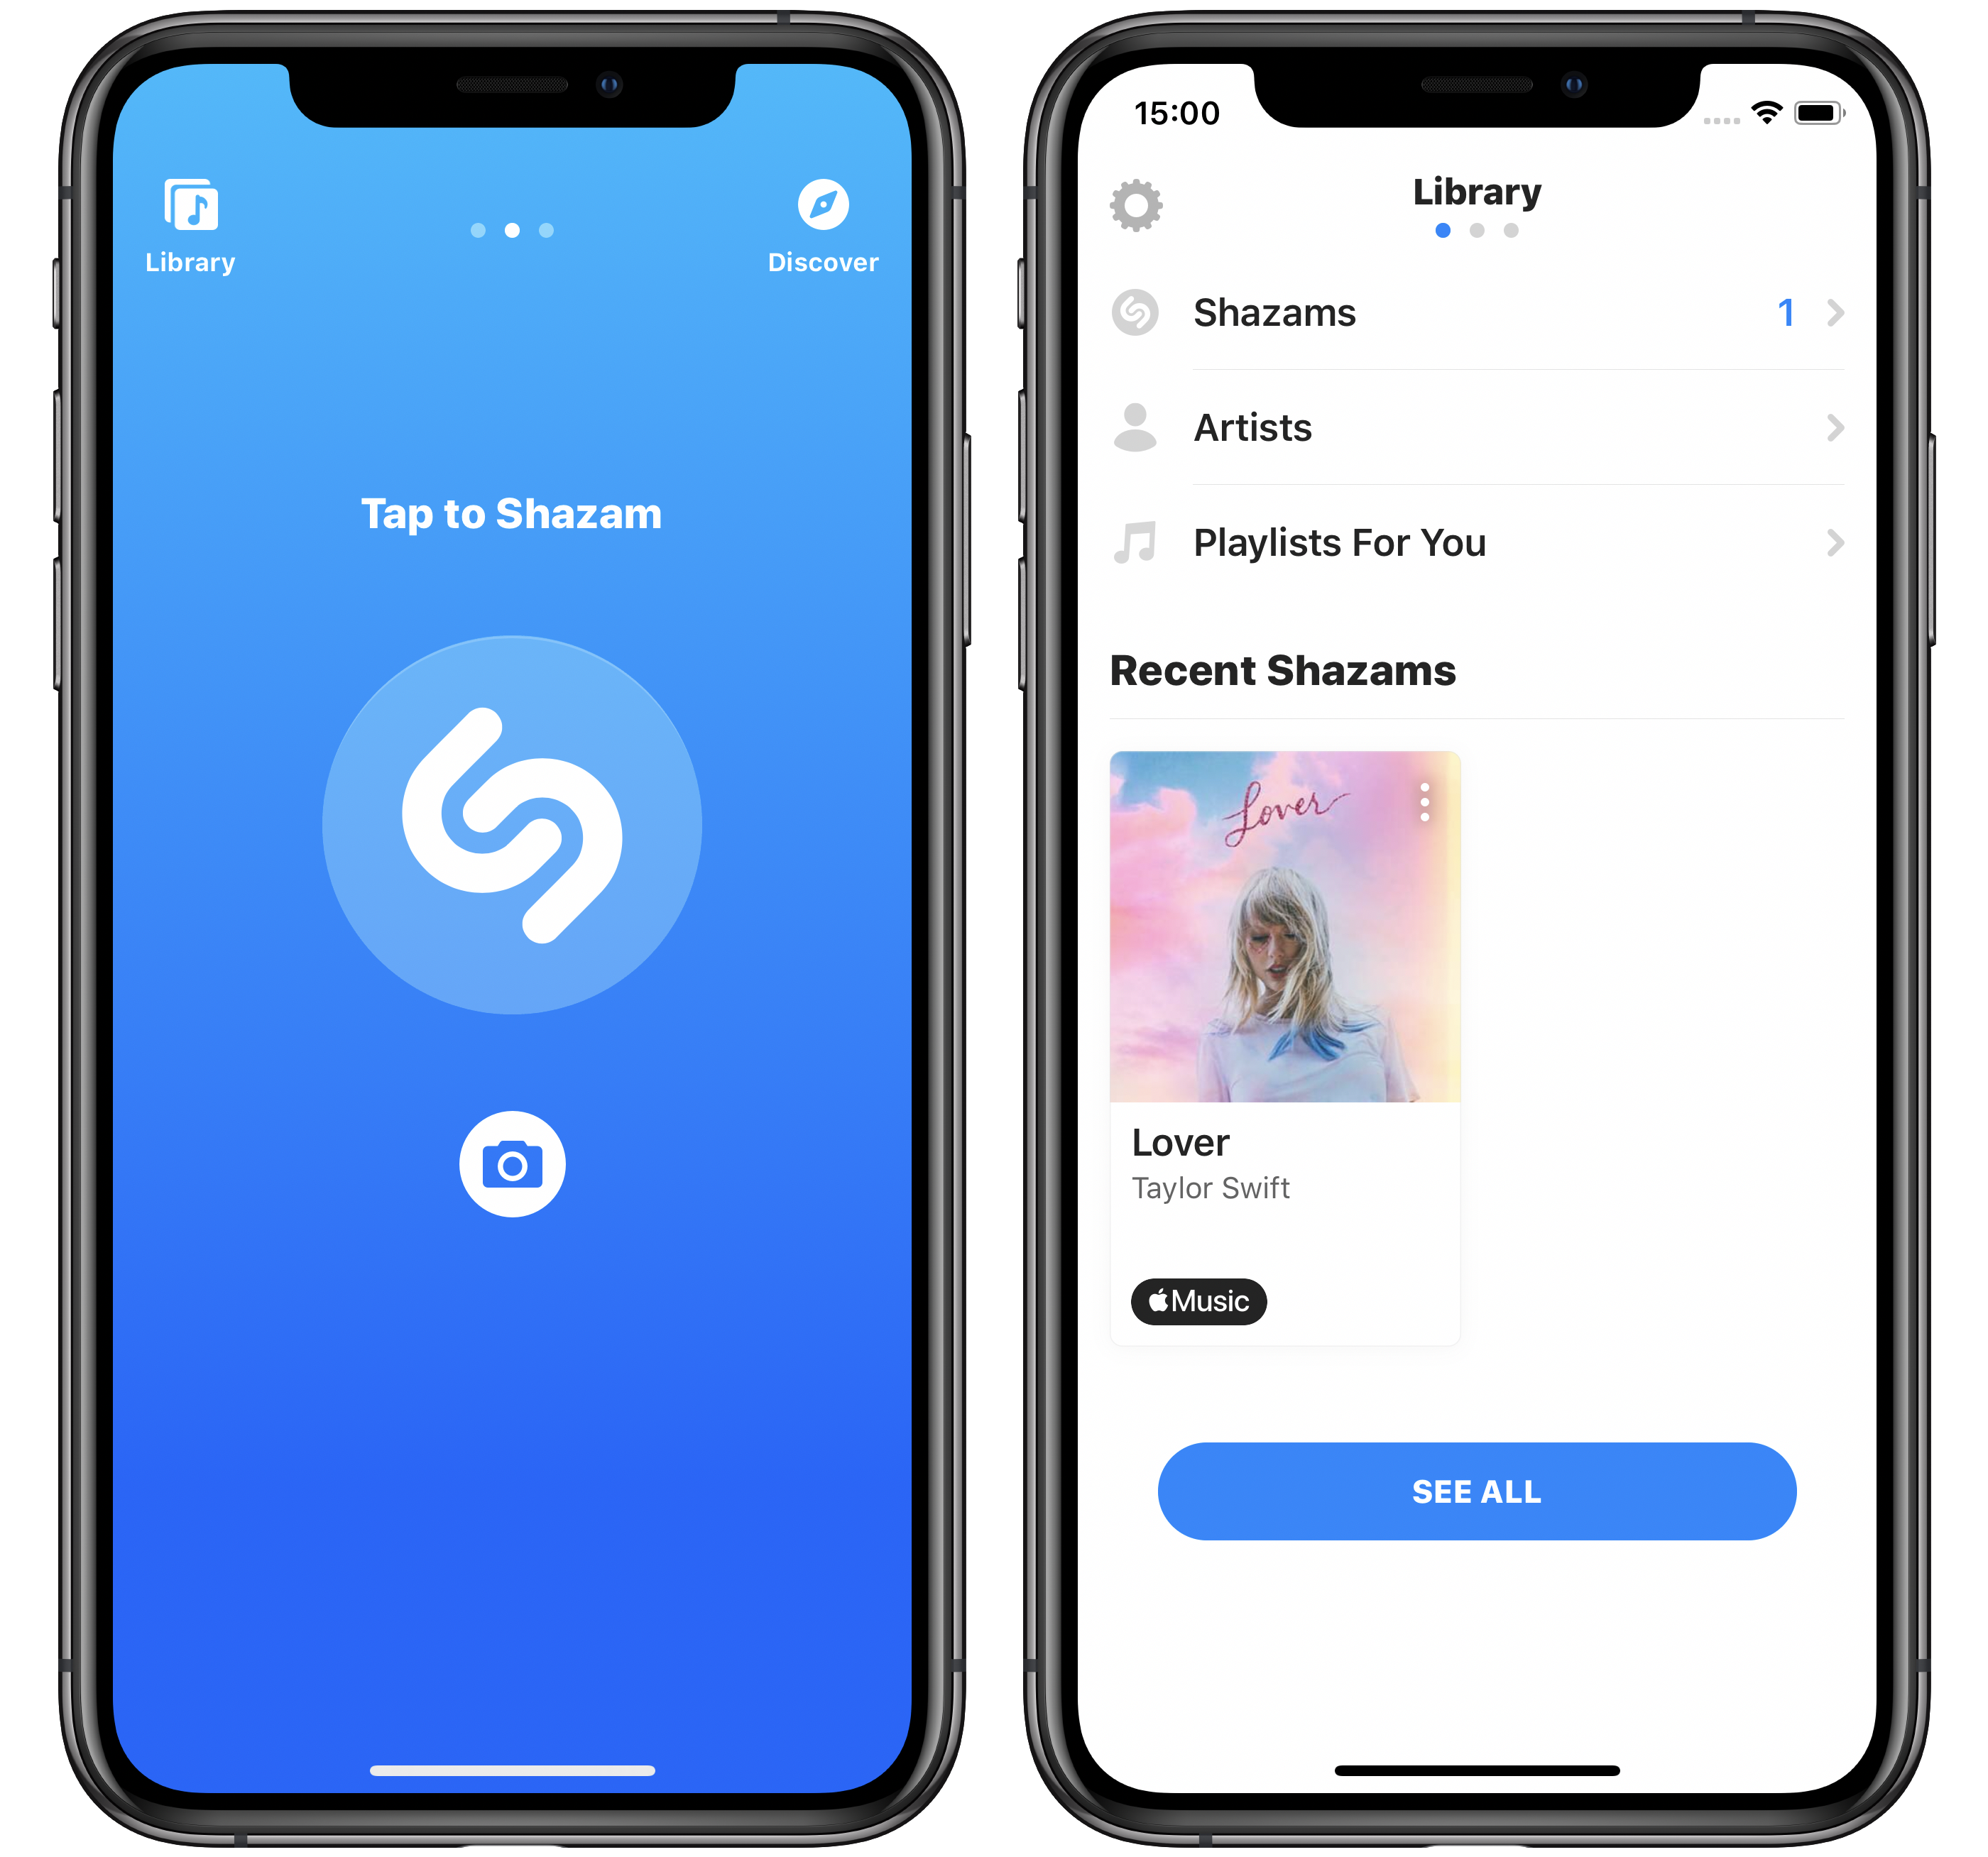 Free apple music with new iphone